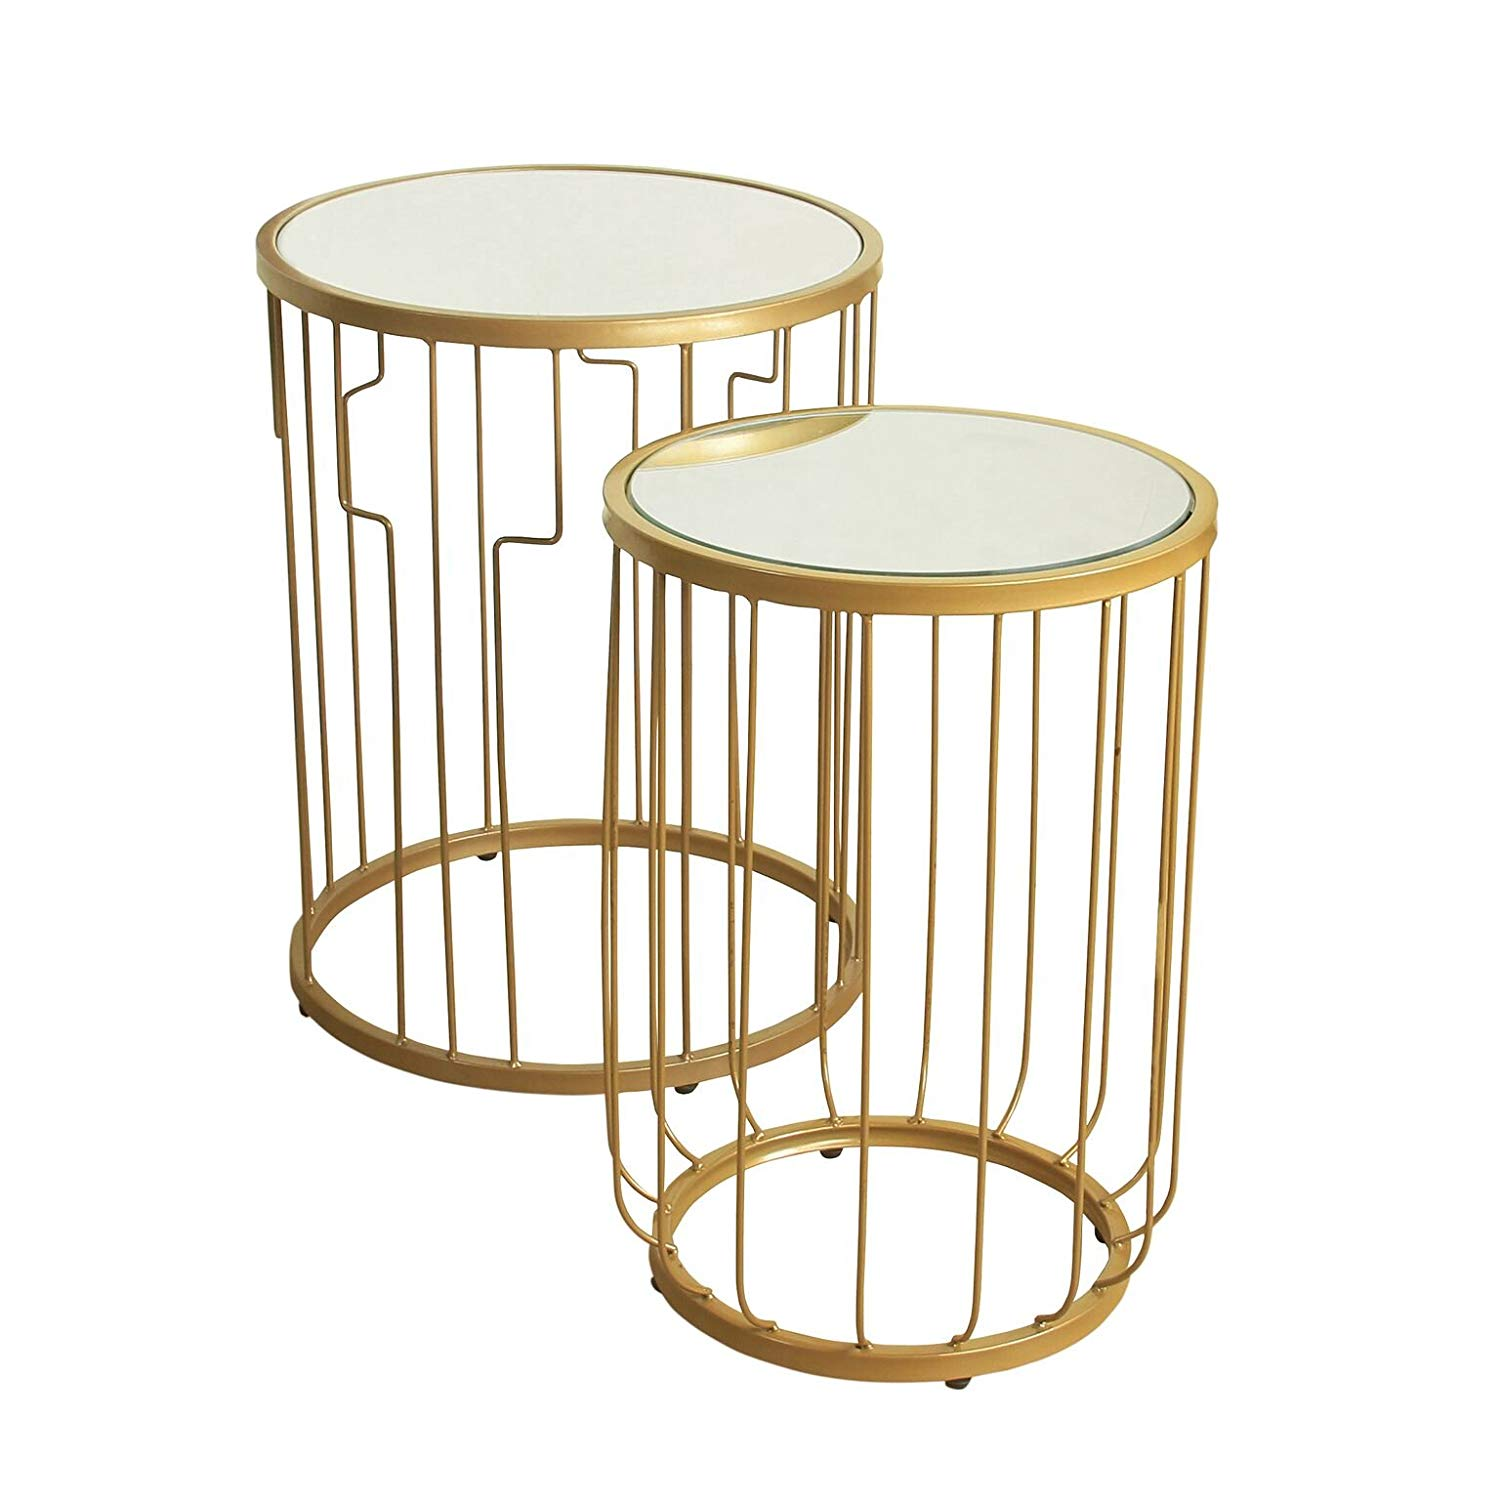 homepop metal accent nesting tables with glass table top set gold kitchen dining best desk lamp rustic white end outdoor furniture covers round modern bedside mirage mirrored